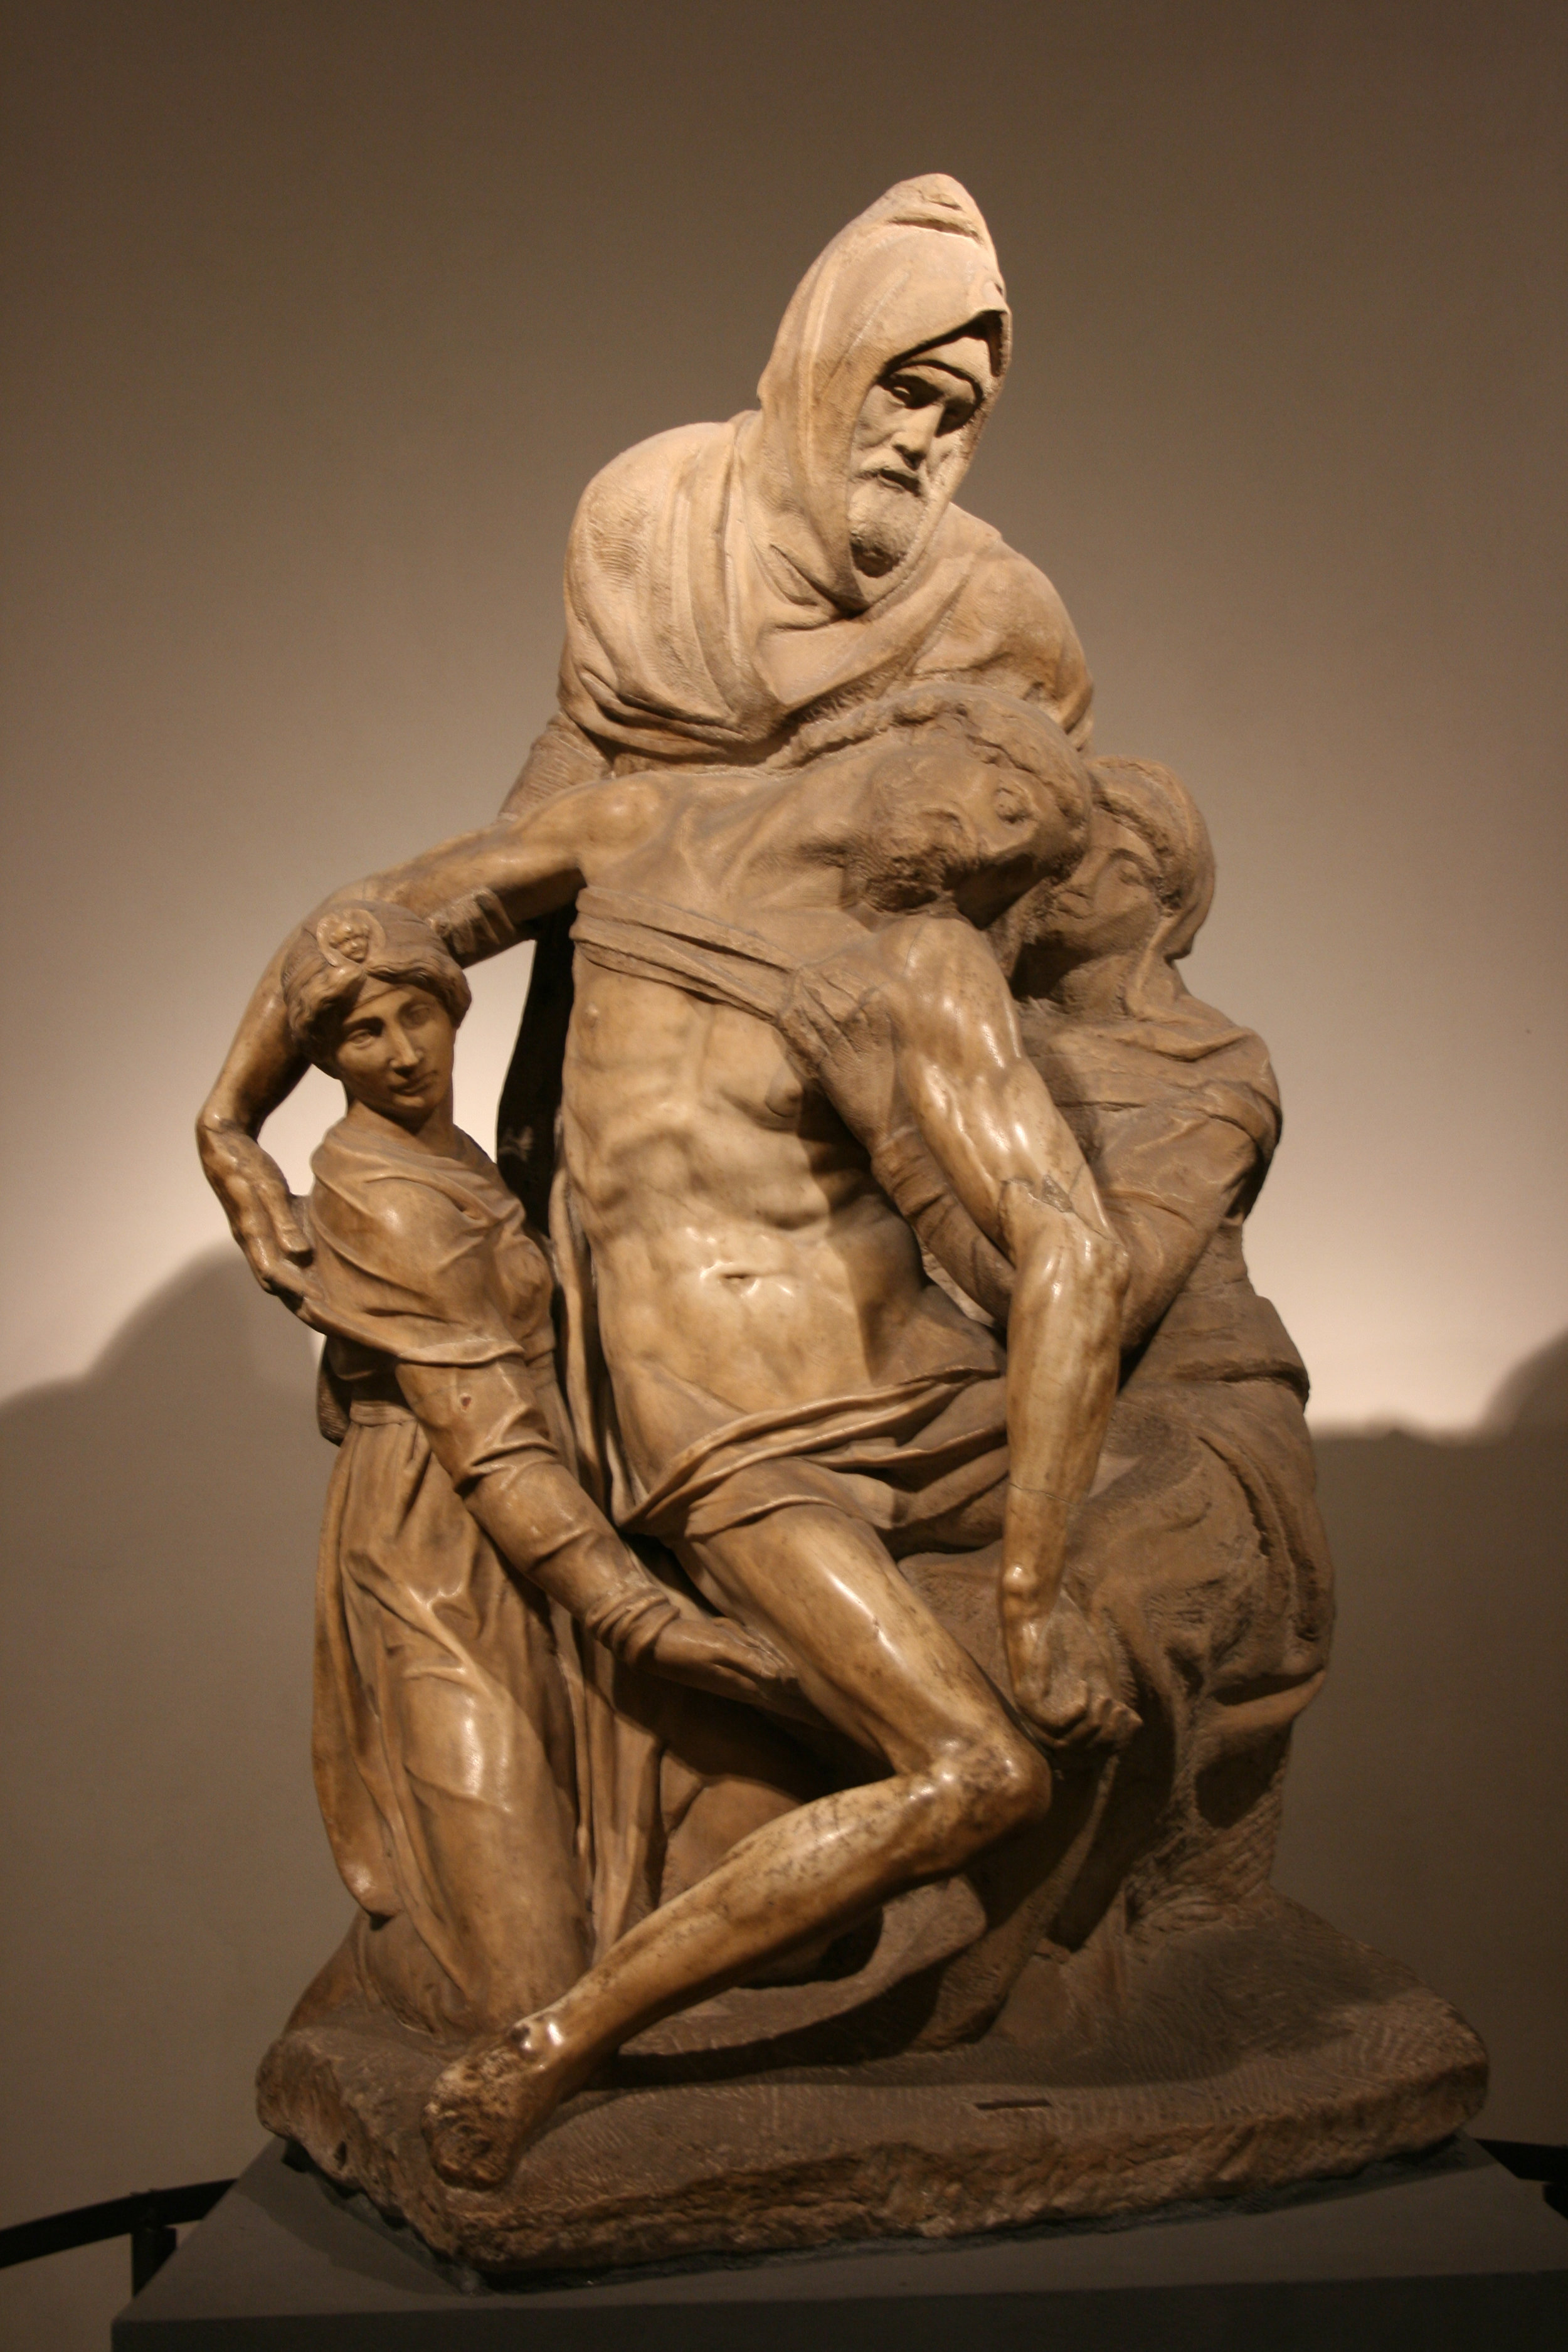 The Florentine Pieta, one of the last sculptures Michelangelo worked on as an elderly man